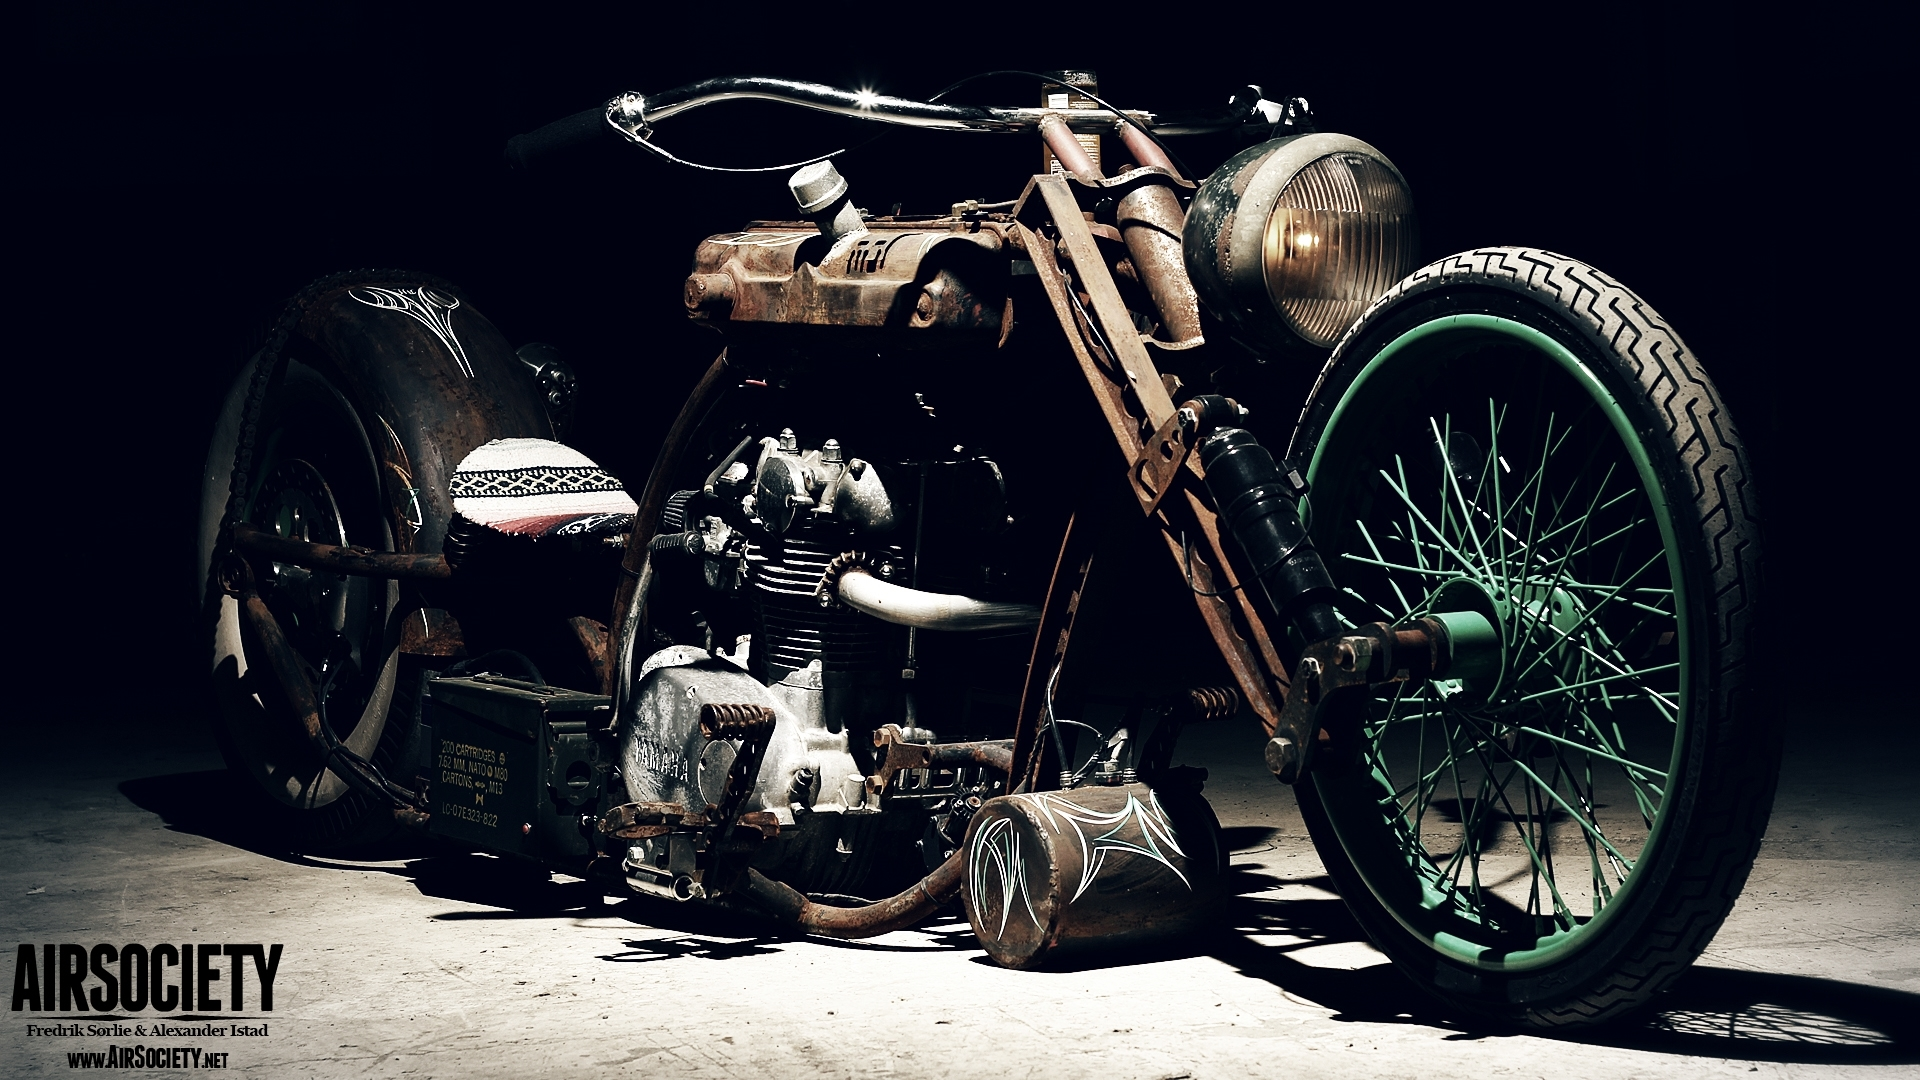 Bikes Wallpapers Hd Desktop Backgrounds